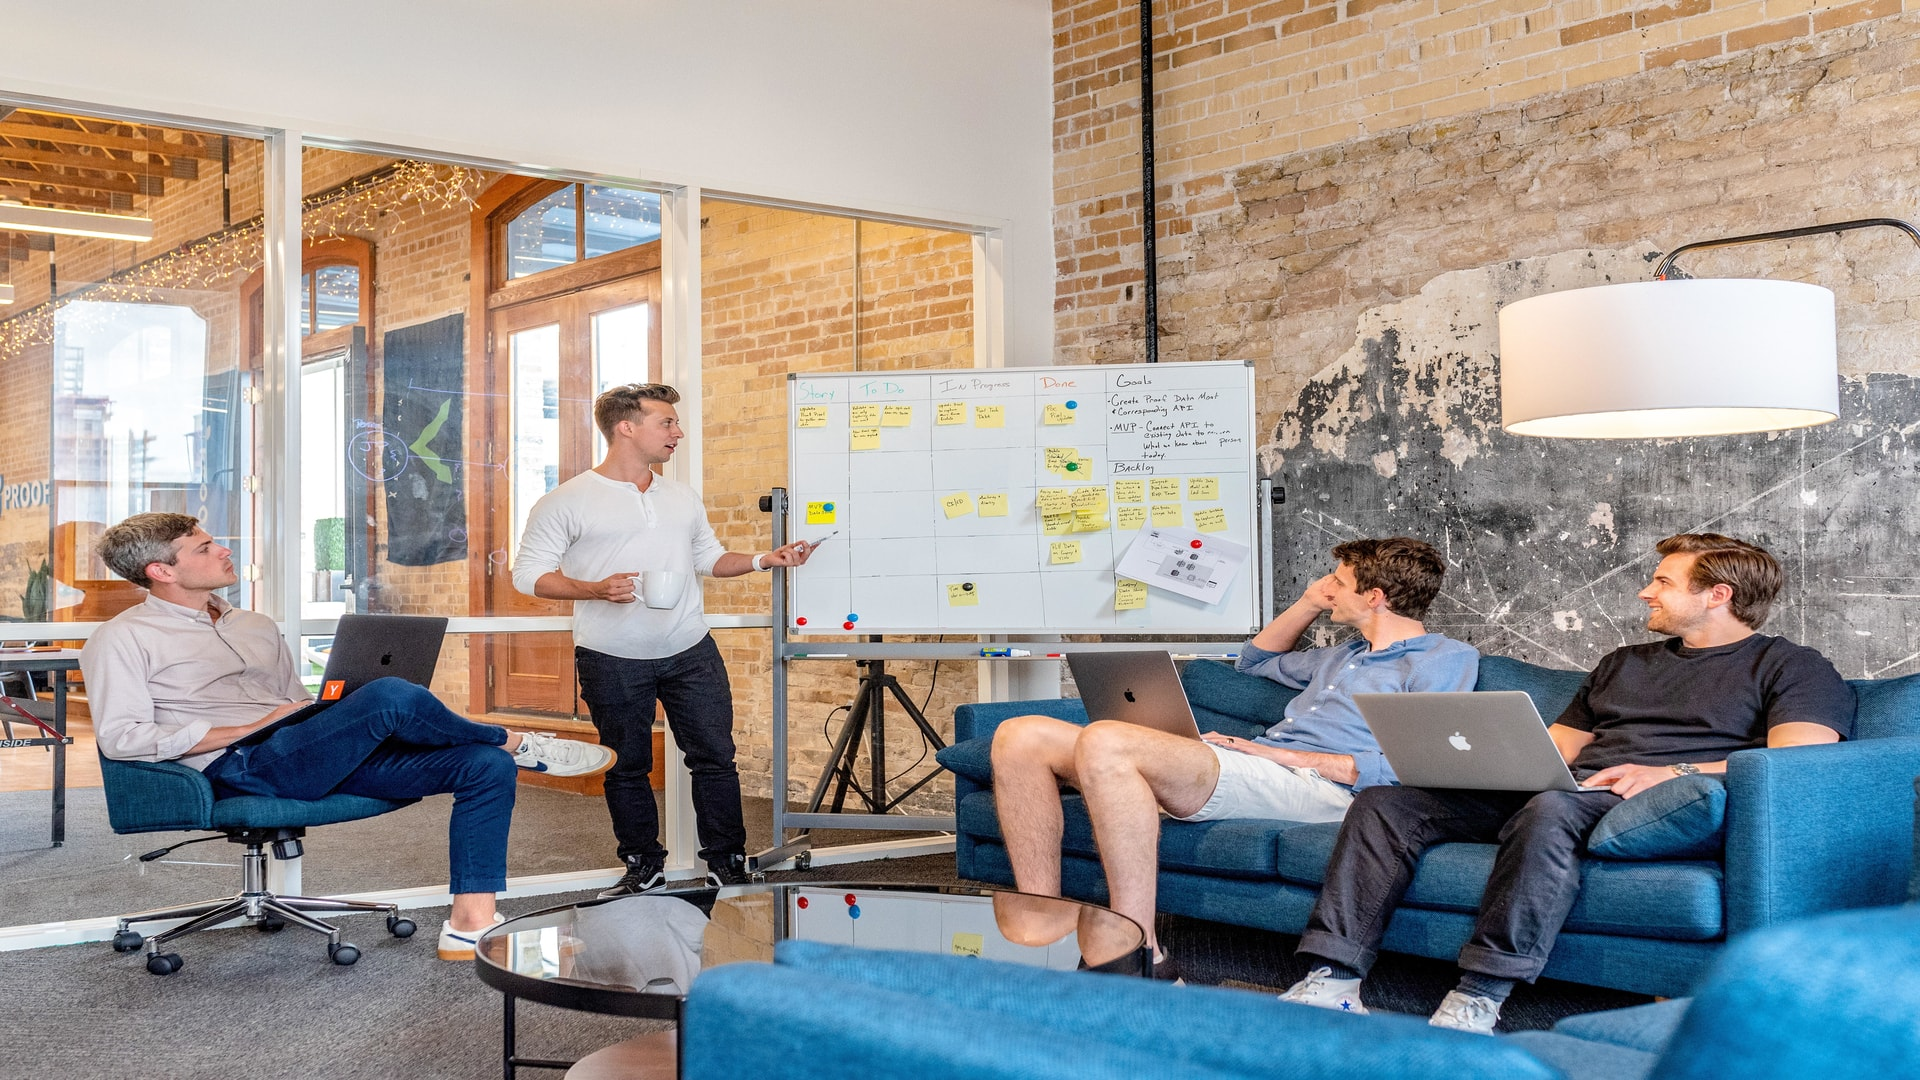 , 3 Startup Unicorns That Outsourced Their Development